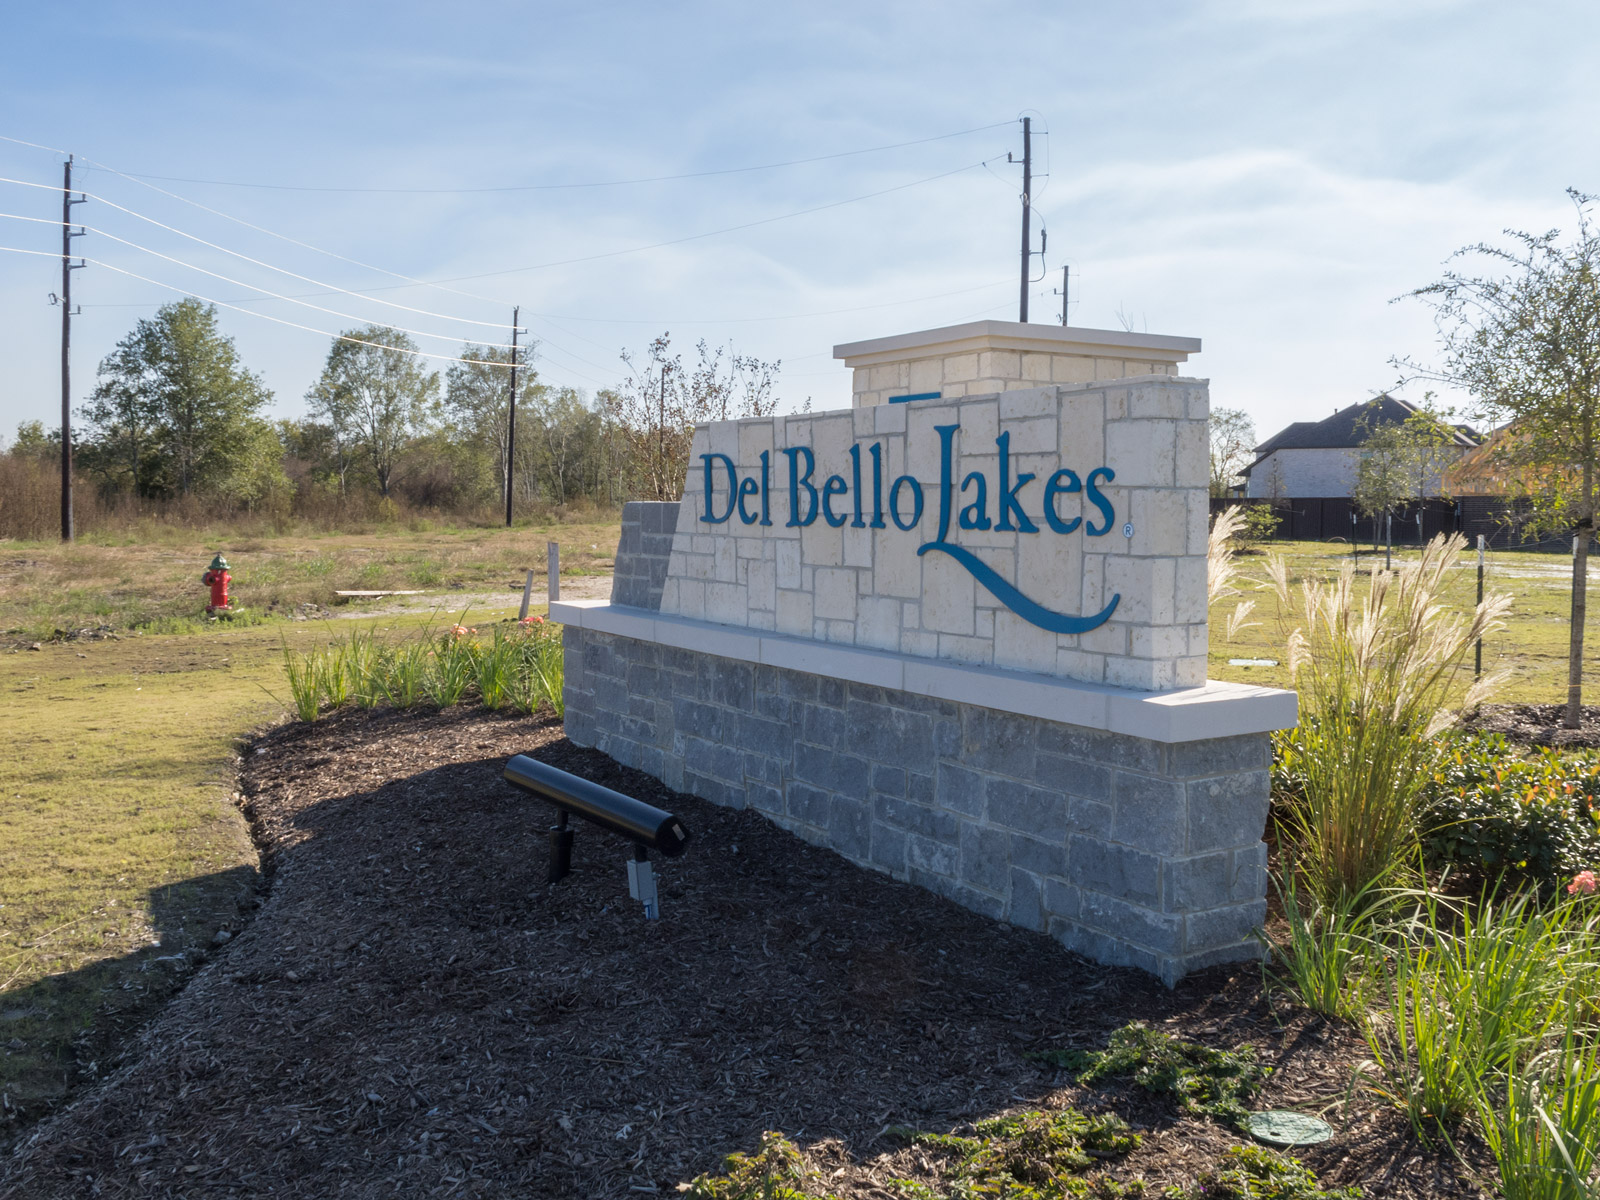 Custom dimensional aluminum letters and logo panel with painted graphics.